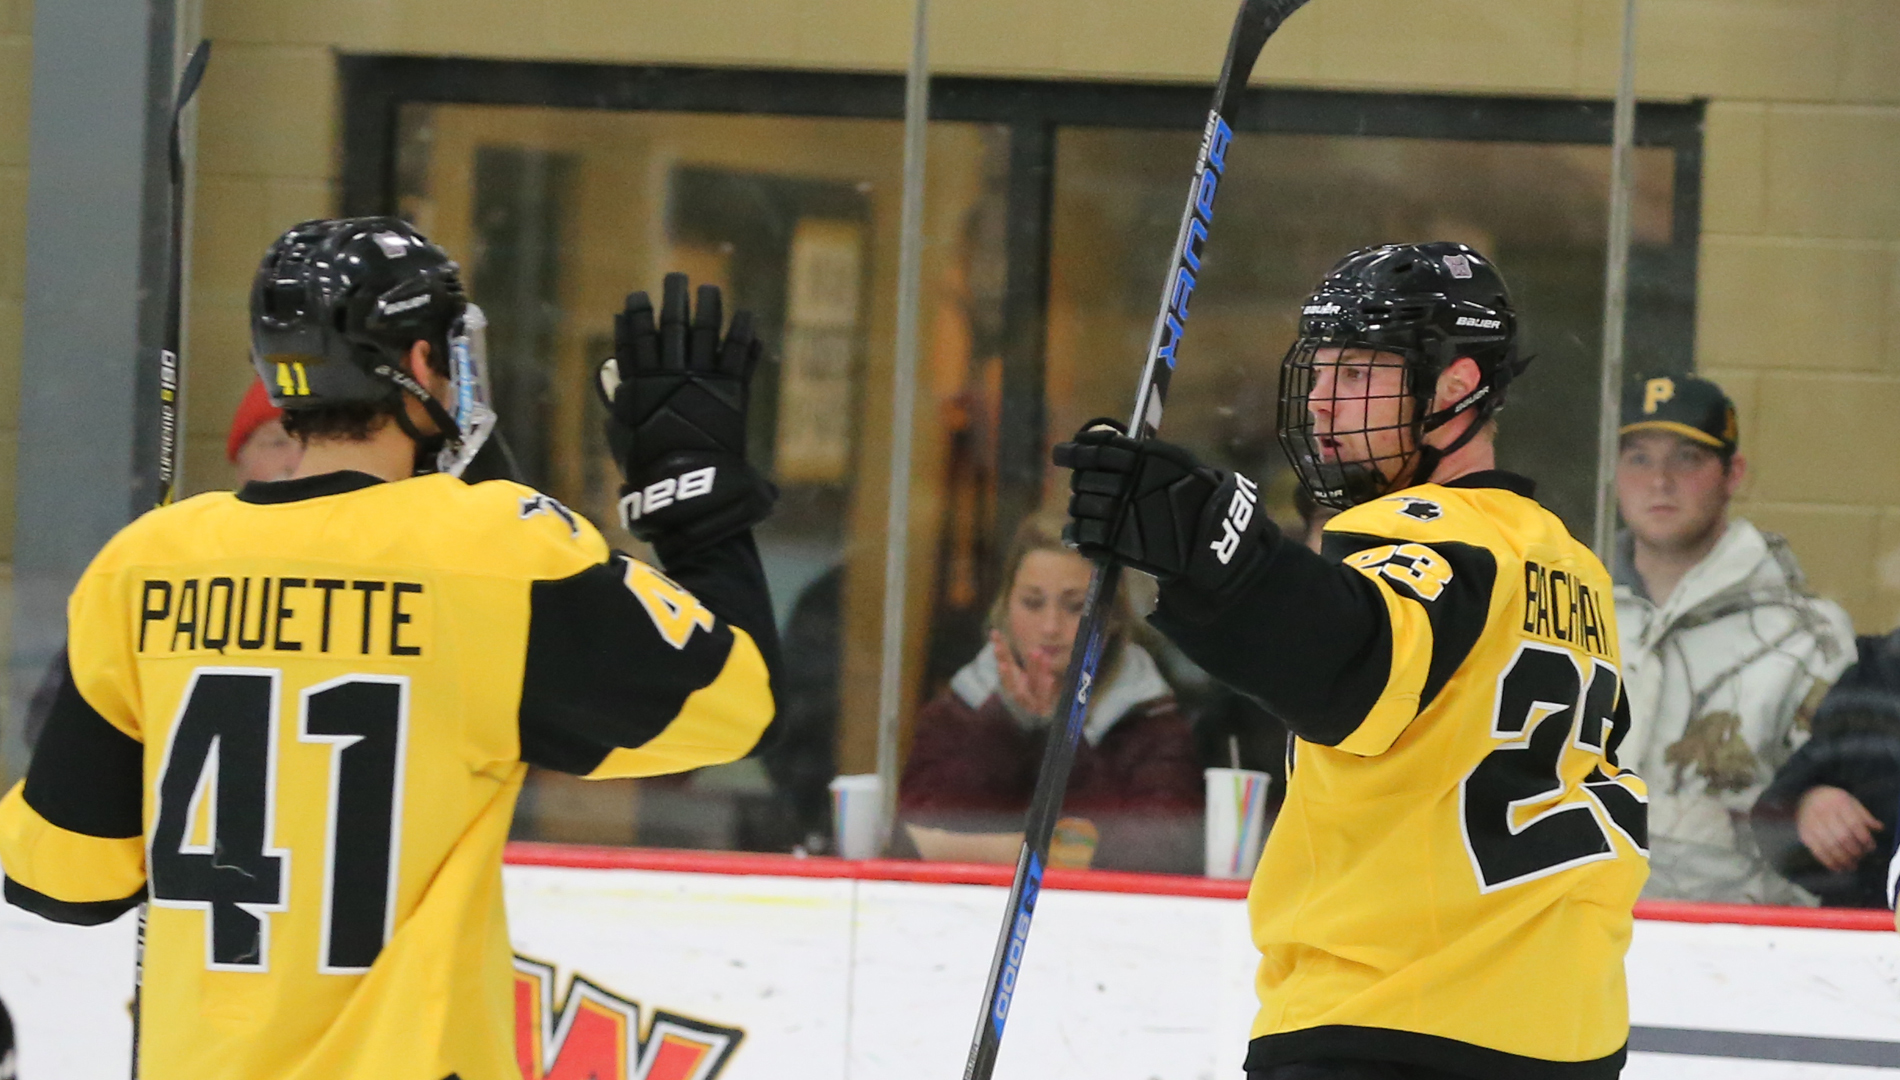 Vincent Paquette and Brian Bachnak celebrate a Bulldogs goal earlier this season. (Action photo by Mike Dickie)